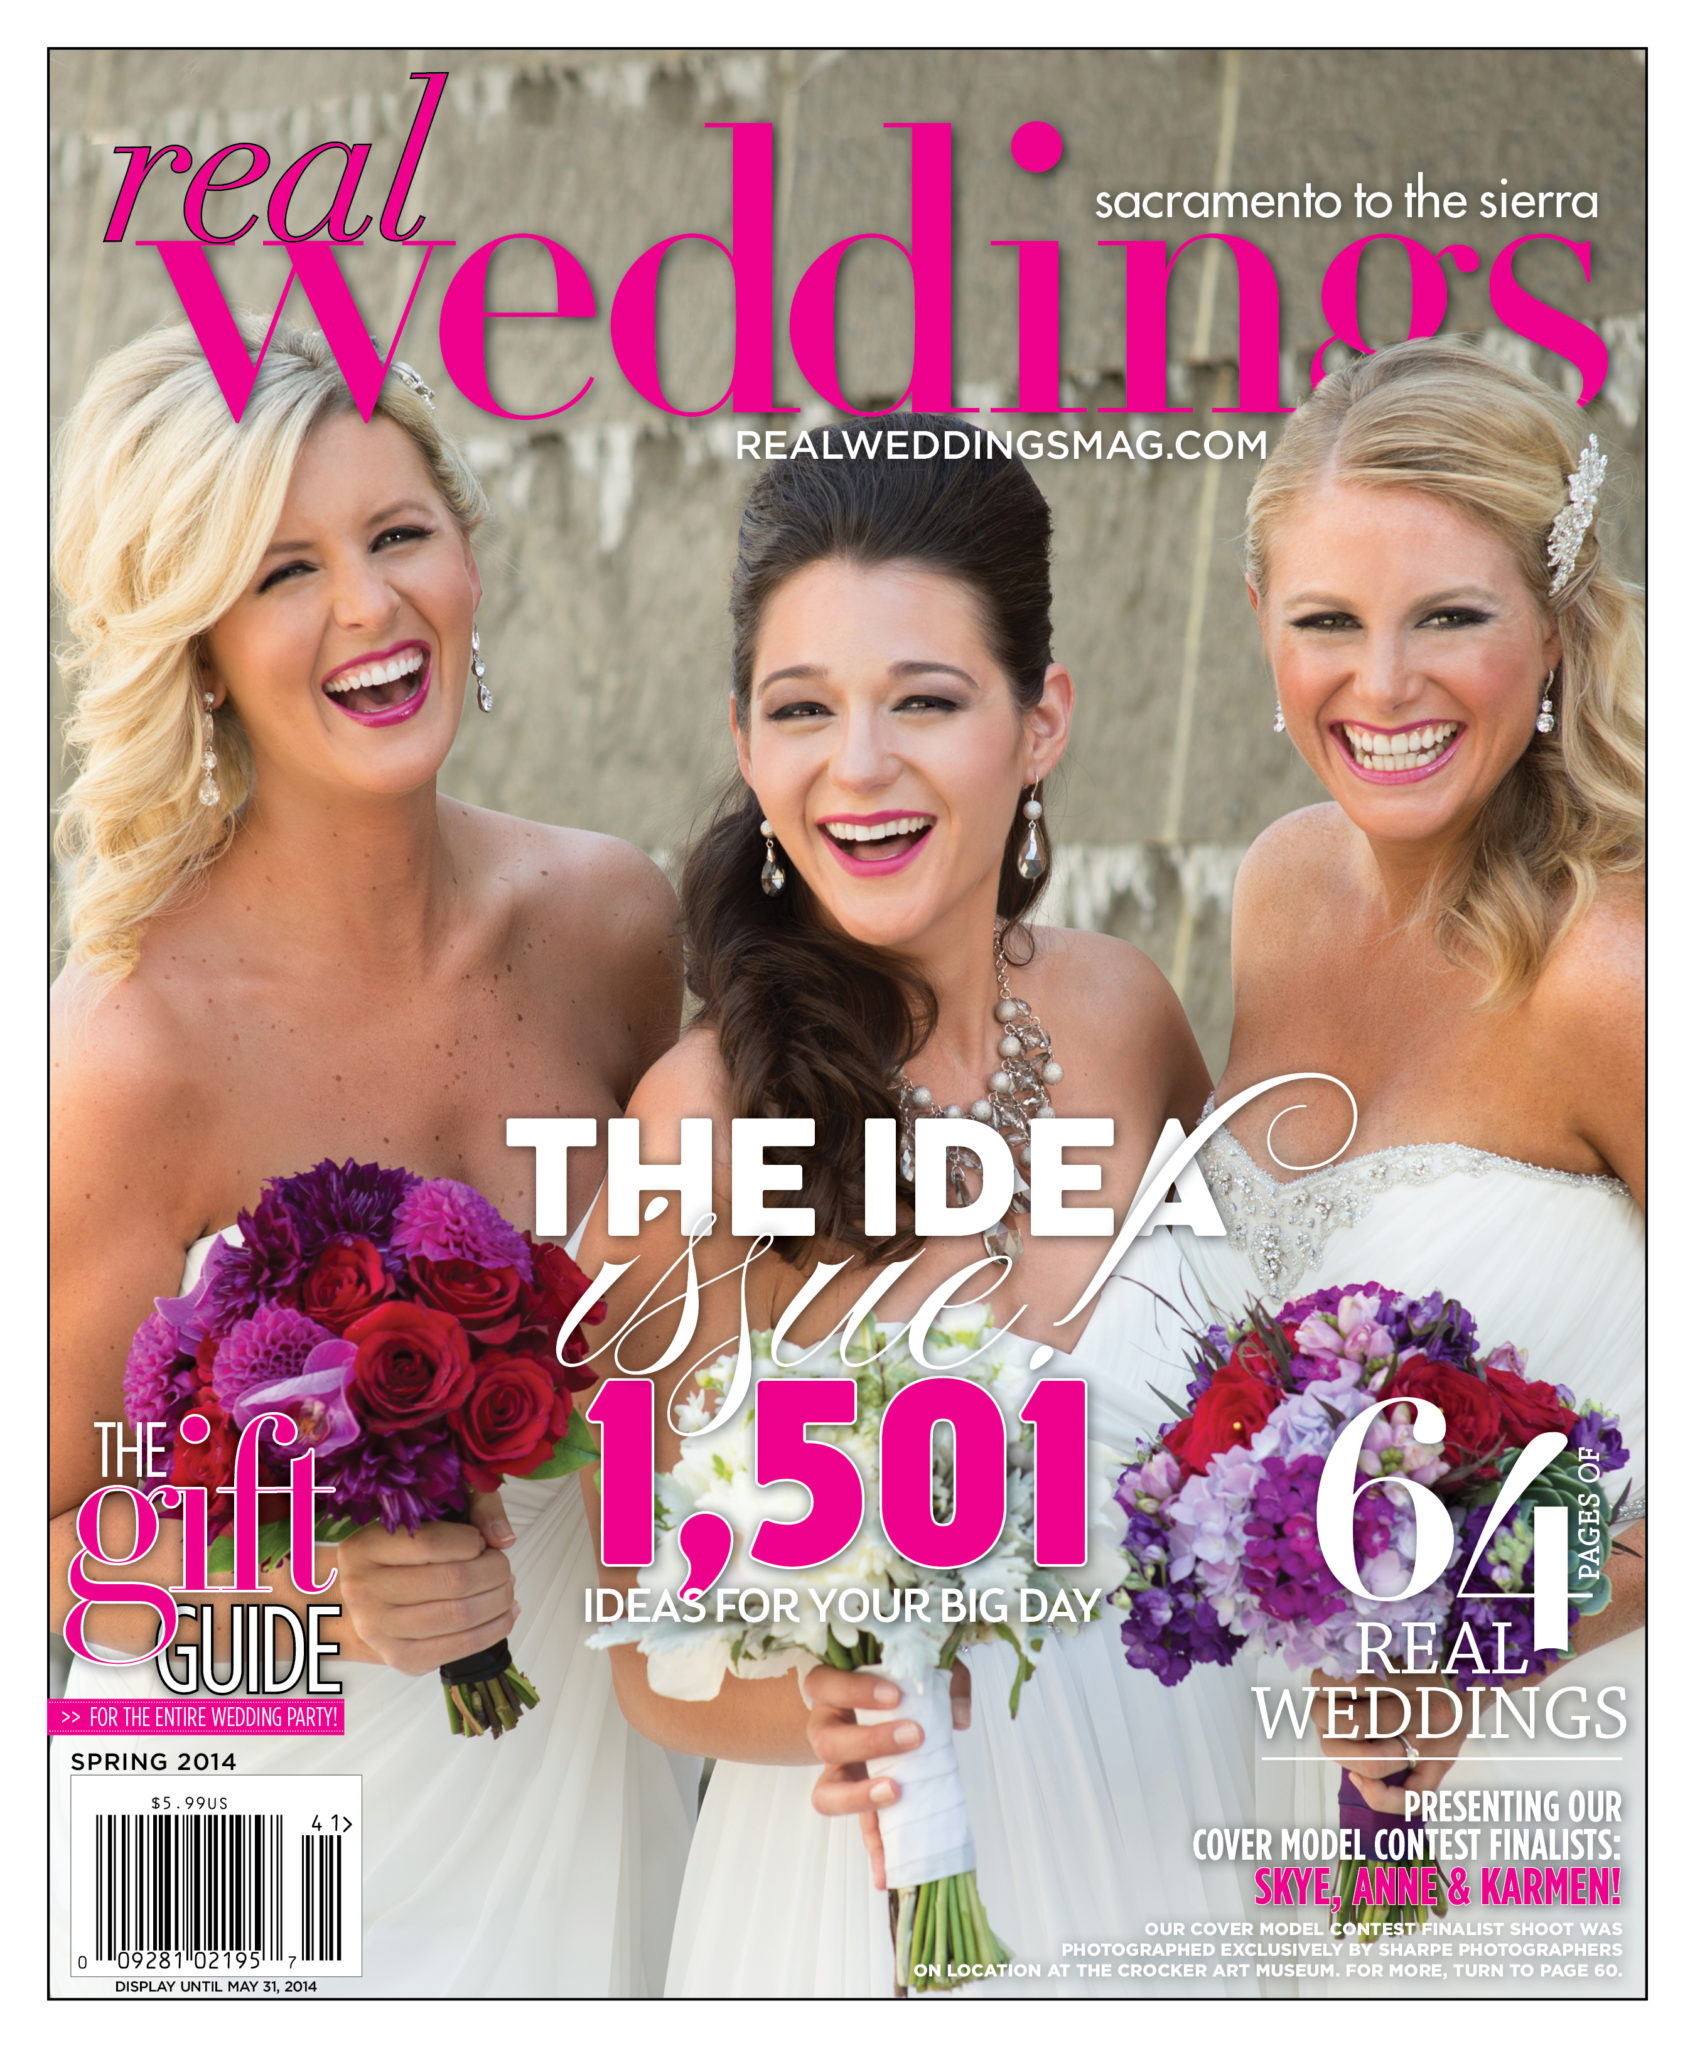 Real Weddings Magazine Winter/Spring 2014 Cover shot at the Crocker Art Museum by Sharpe Photographers, now know as The Red Sneaker Studio